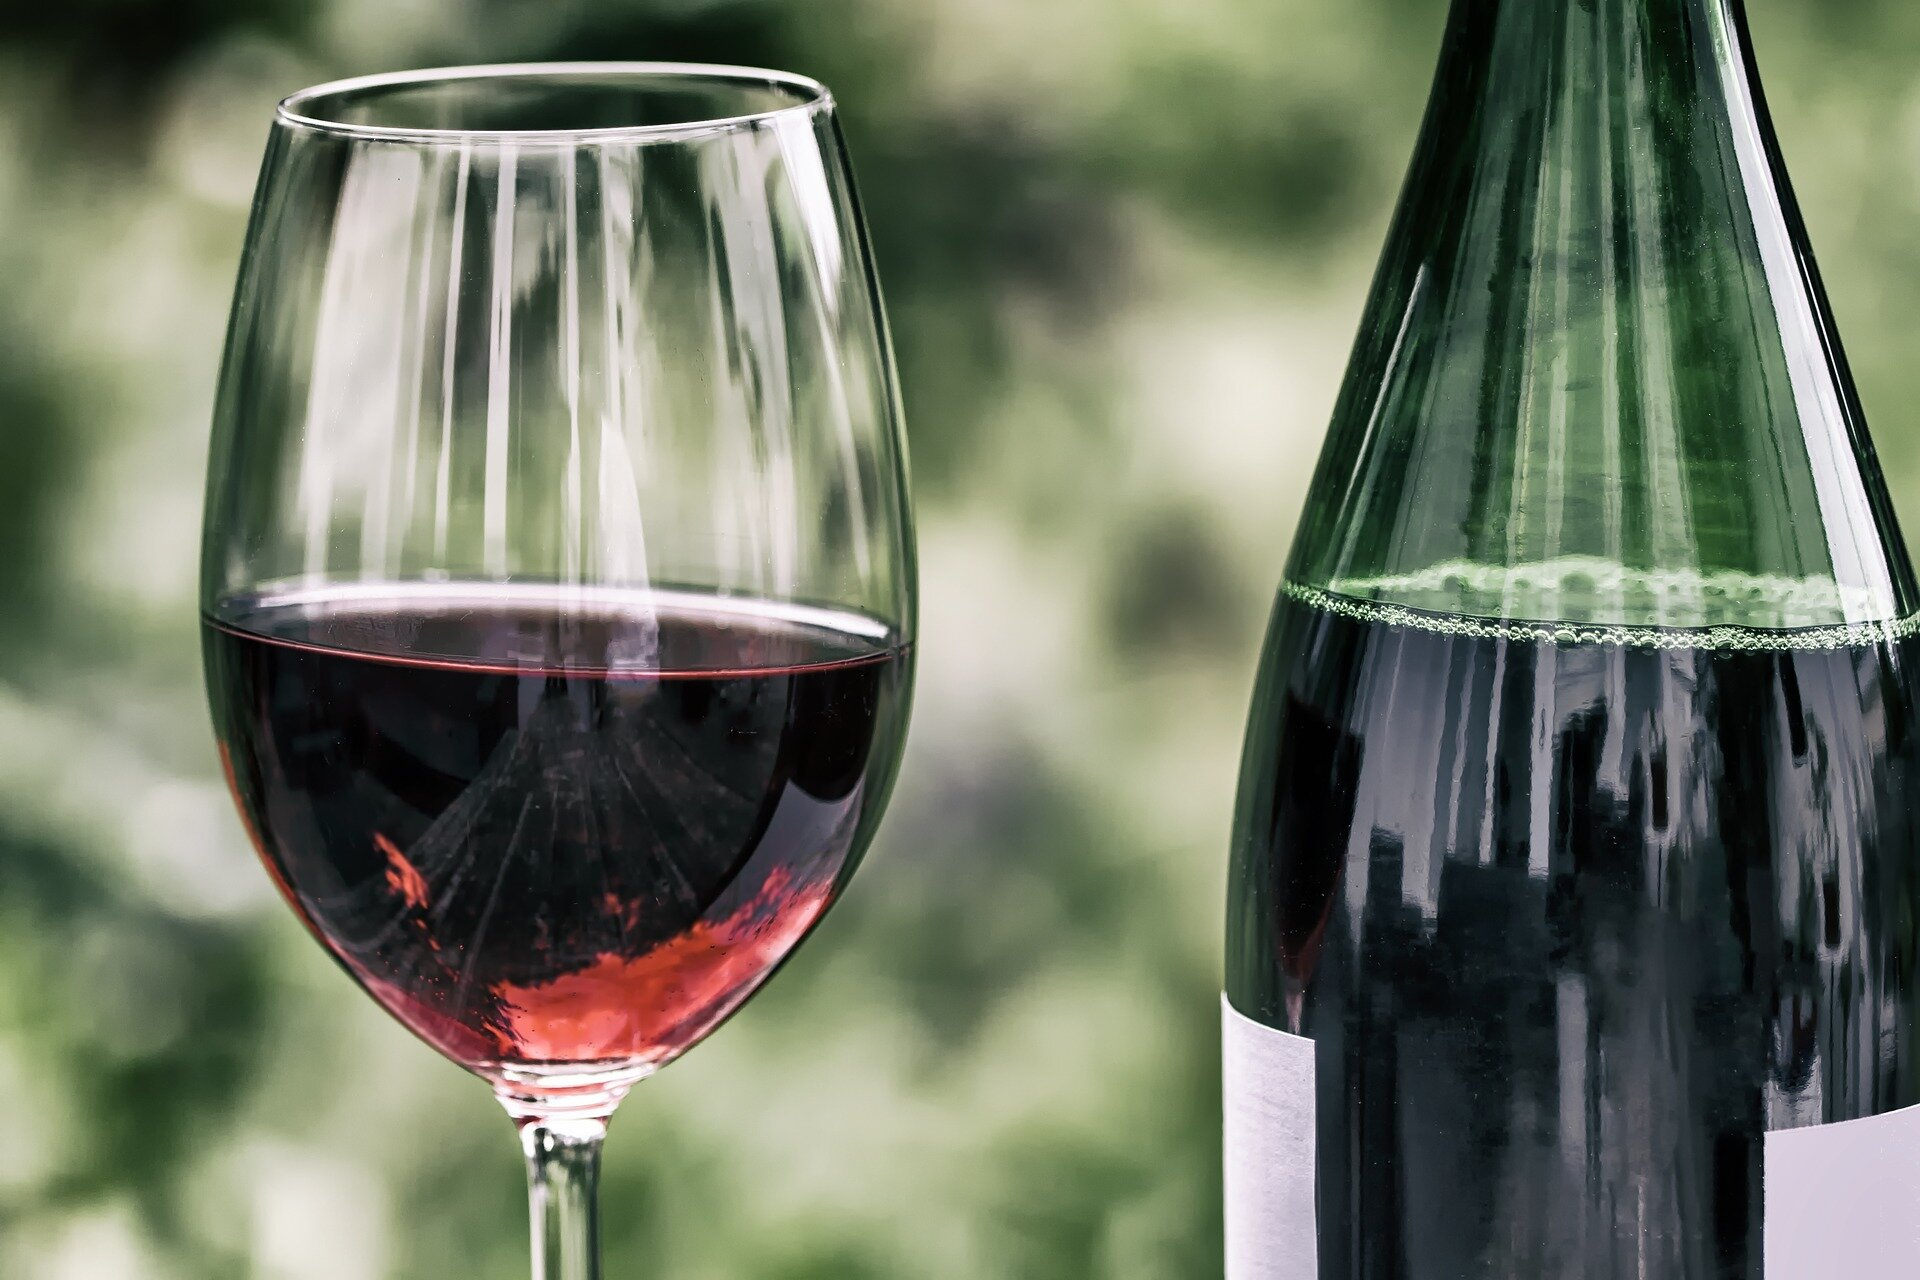 Freshly Prepped is co-hosting a WINE & FOOD event at Balboa Park.